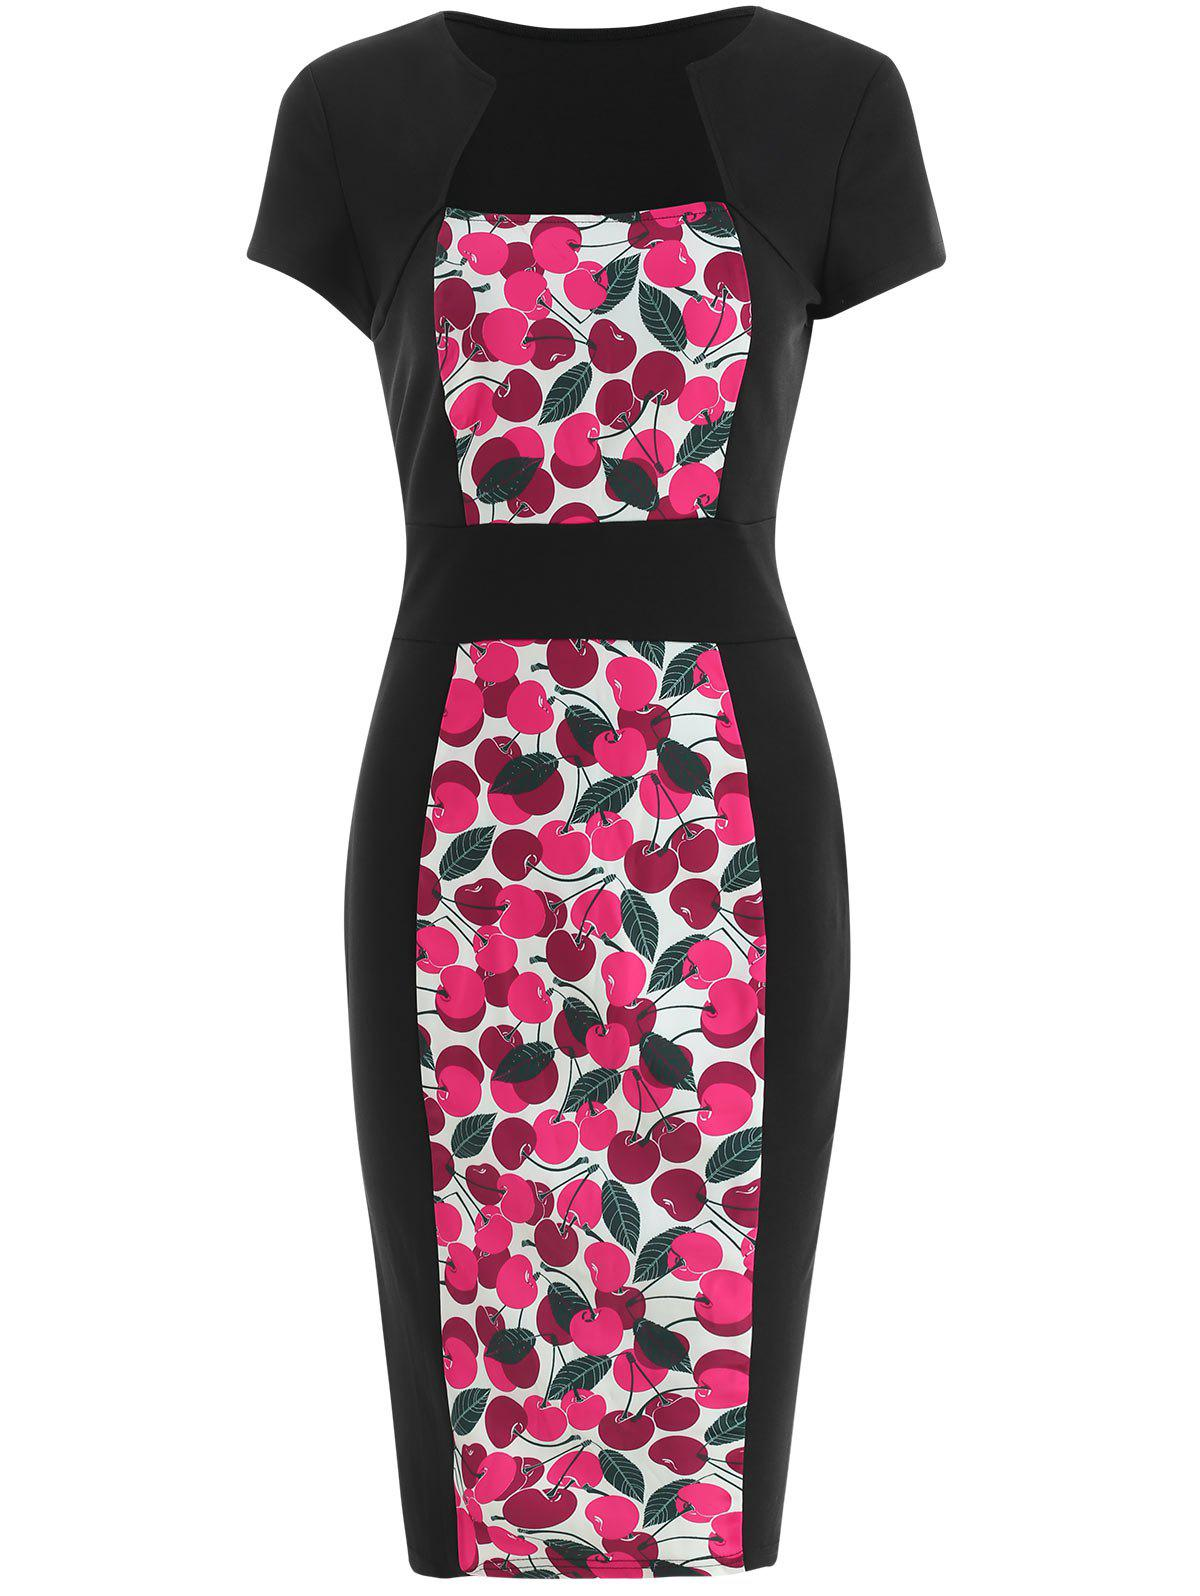 High Waist Slim Cherry Print Dress - multicolor M